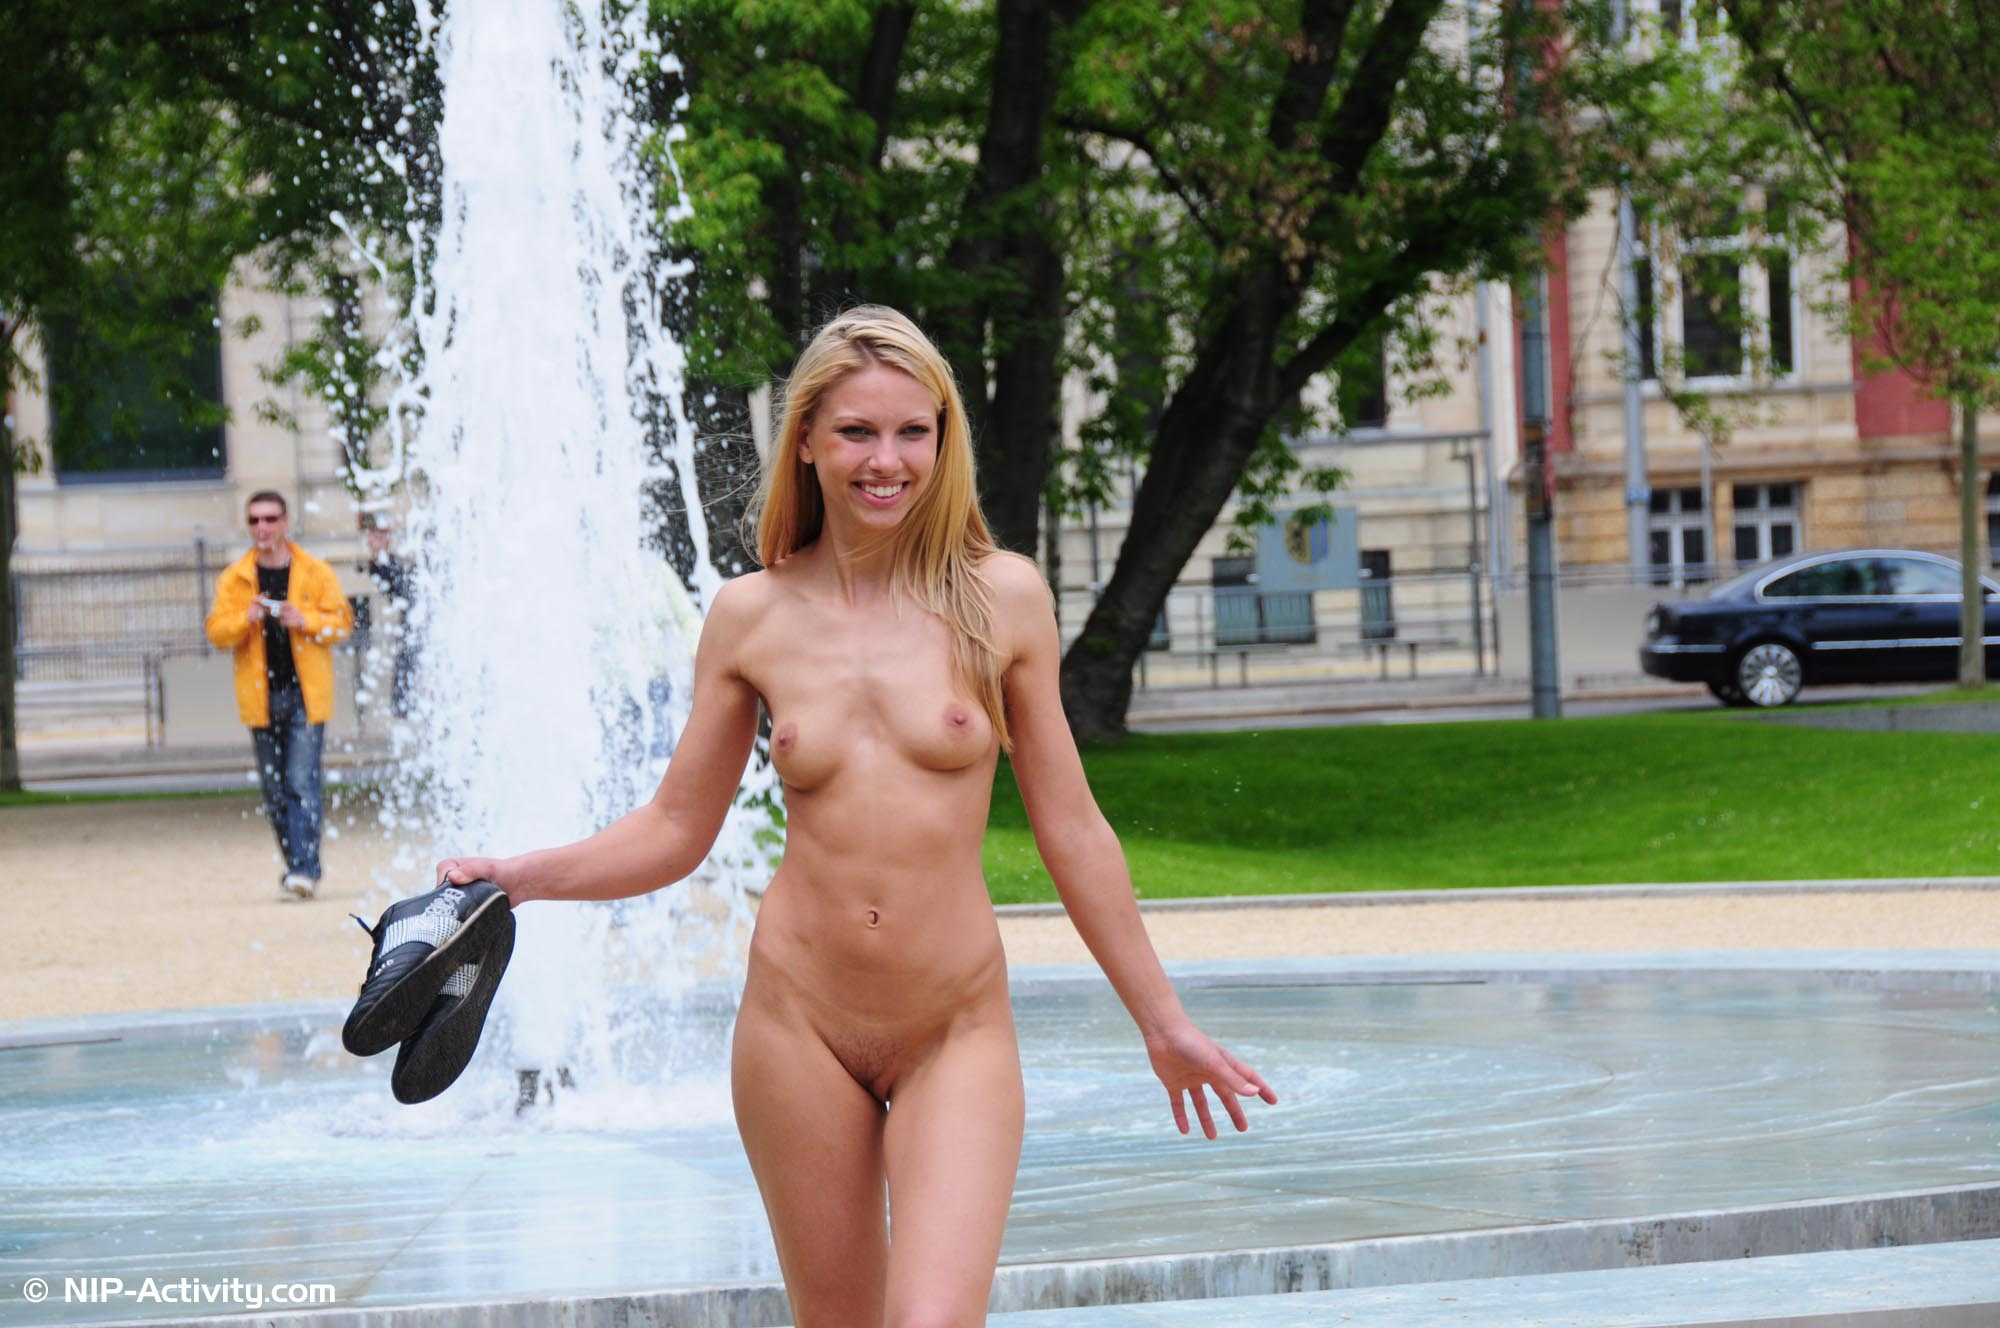 Very Mature women public nude and naked are